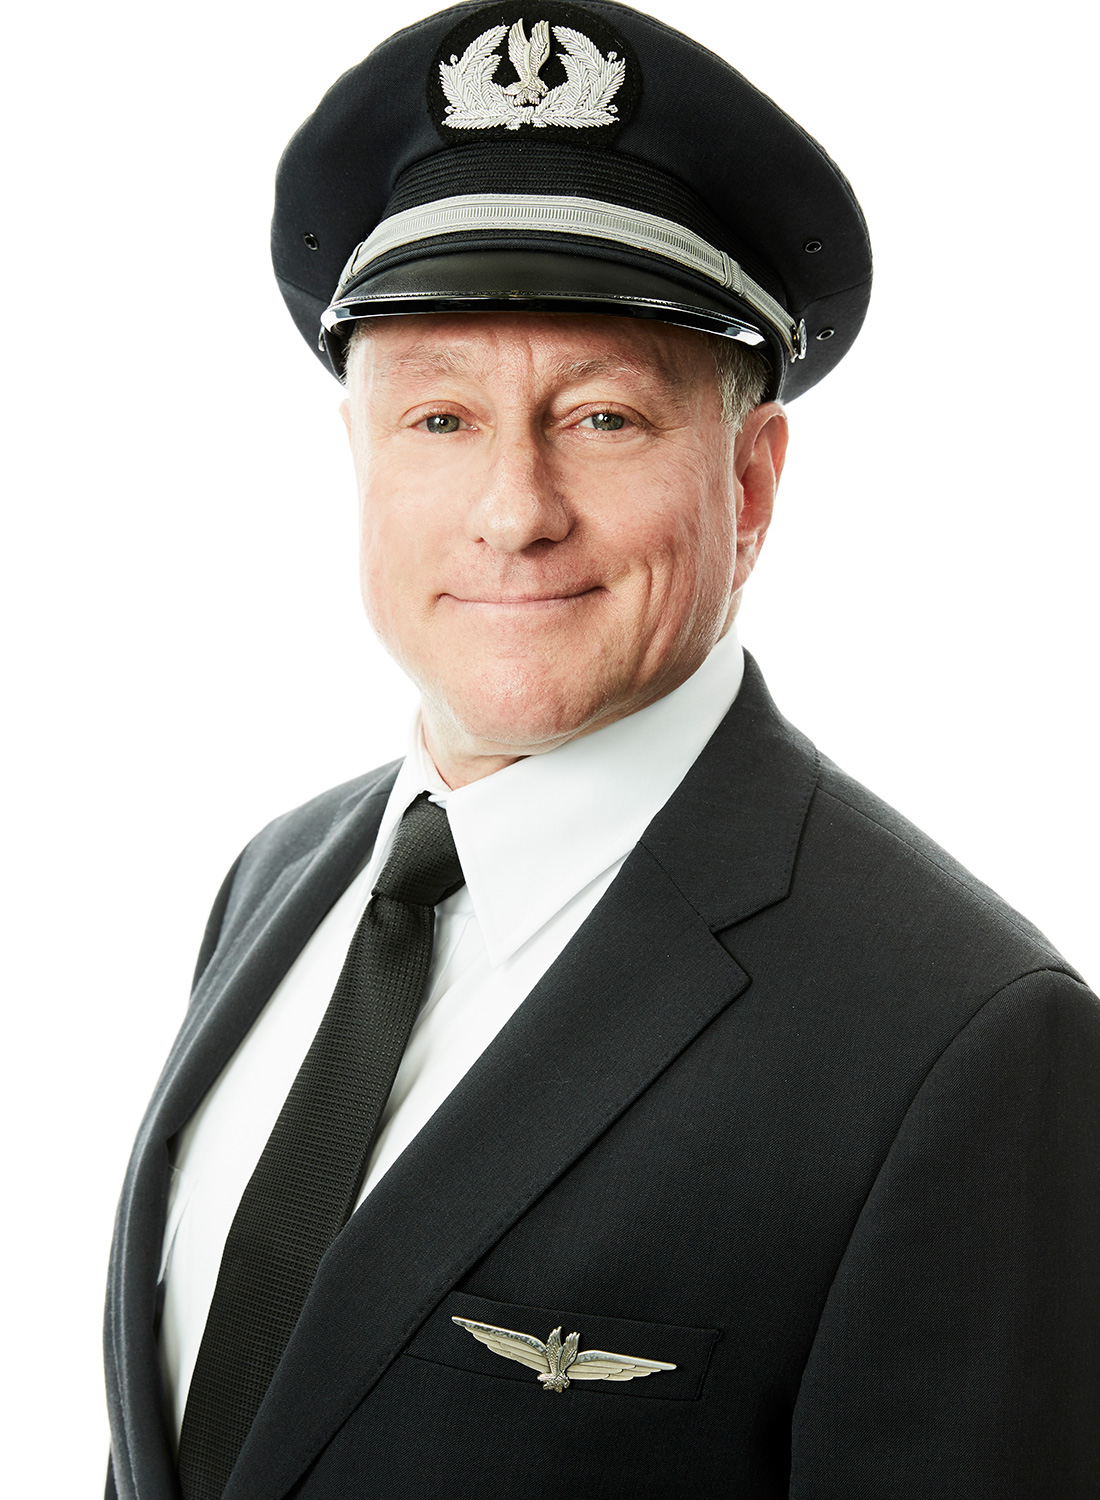 160920_AmericanAirlines_Portraits_By_BriJohnson_0003.jpg